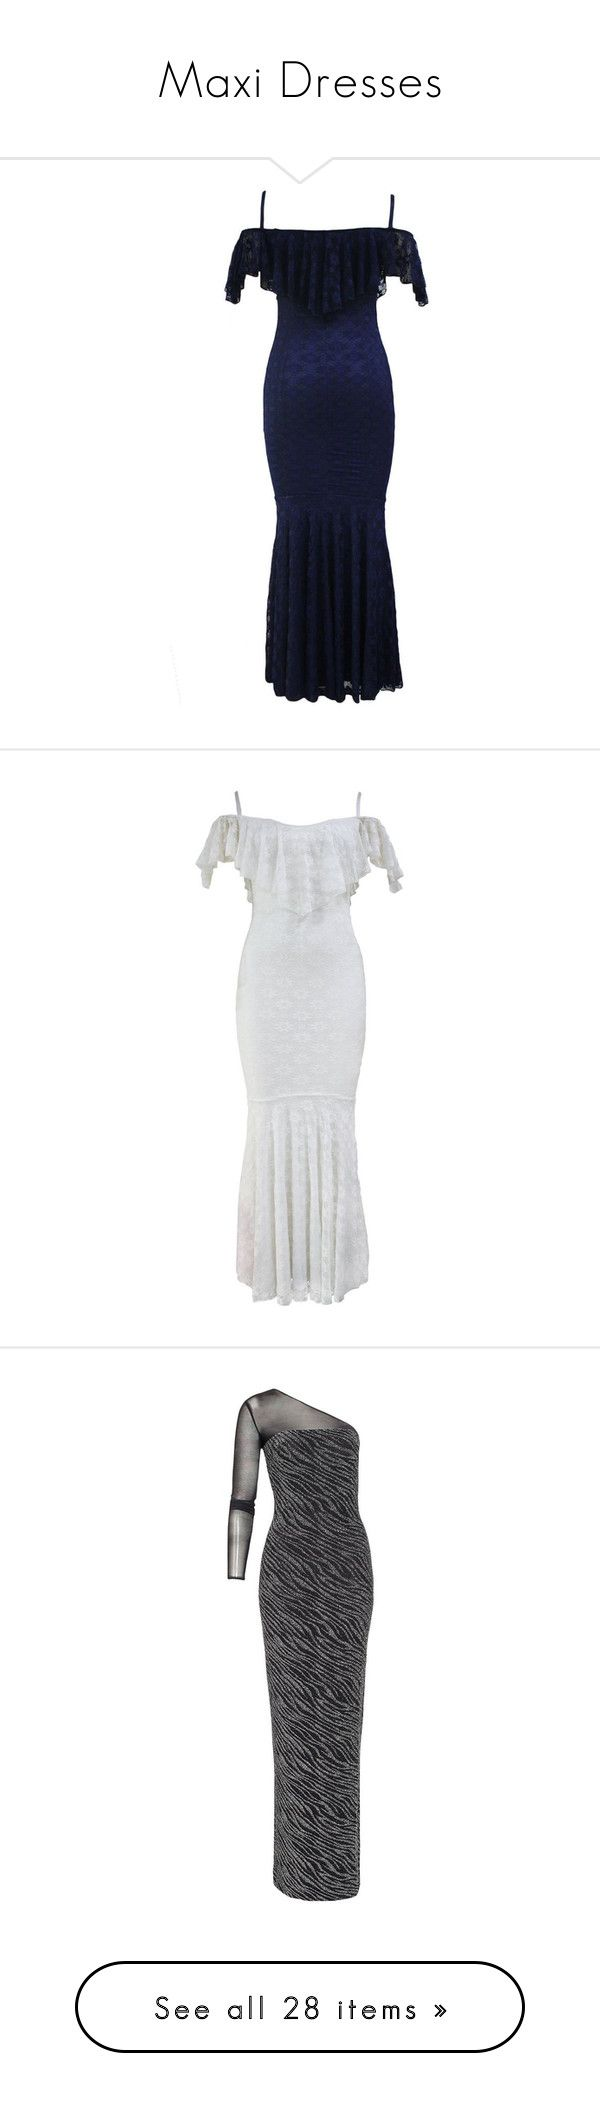 """""""Maxi Dresses"""" by modebuy on Polyvore featuring modebuy, intimates, robes, petite robes, sexy dressing gown, petite bathrobes, mesh robe, sexy bath robe, bath robes and dressing gown"""